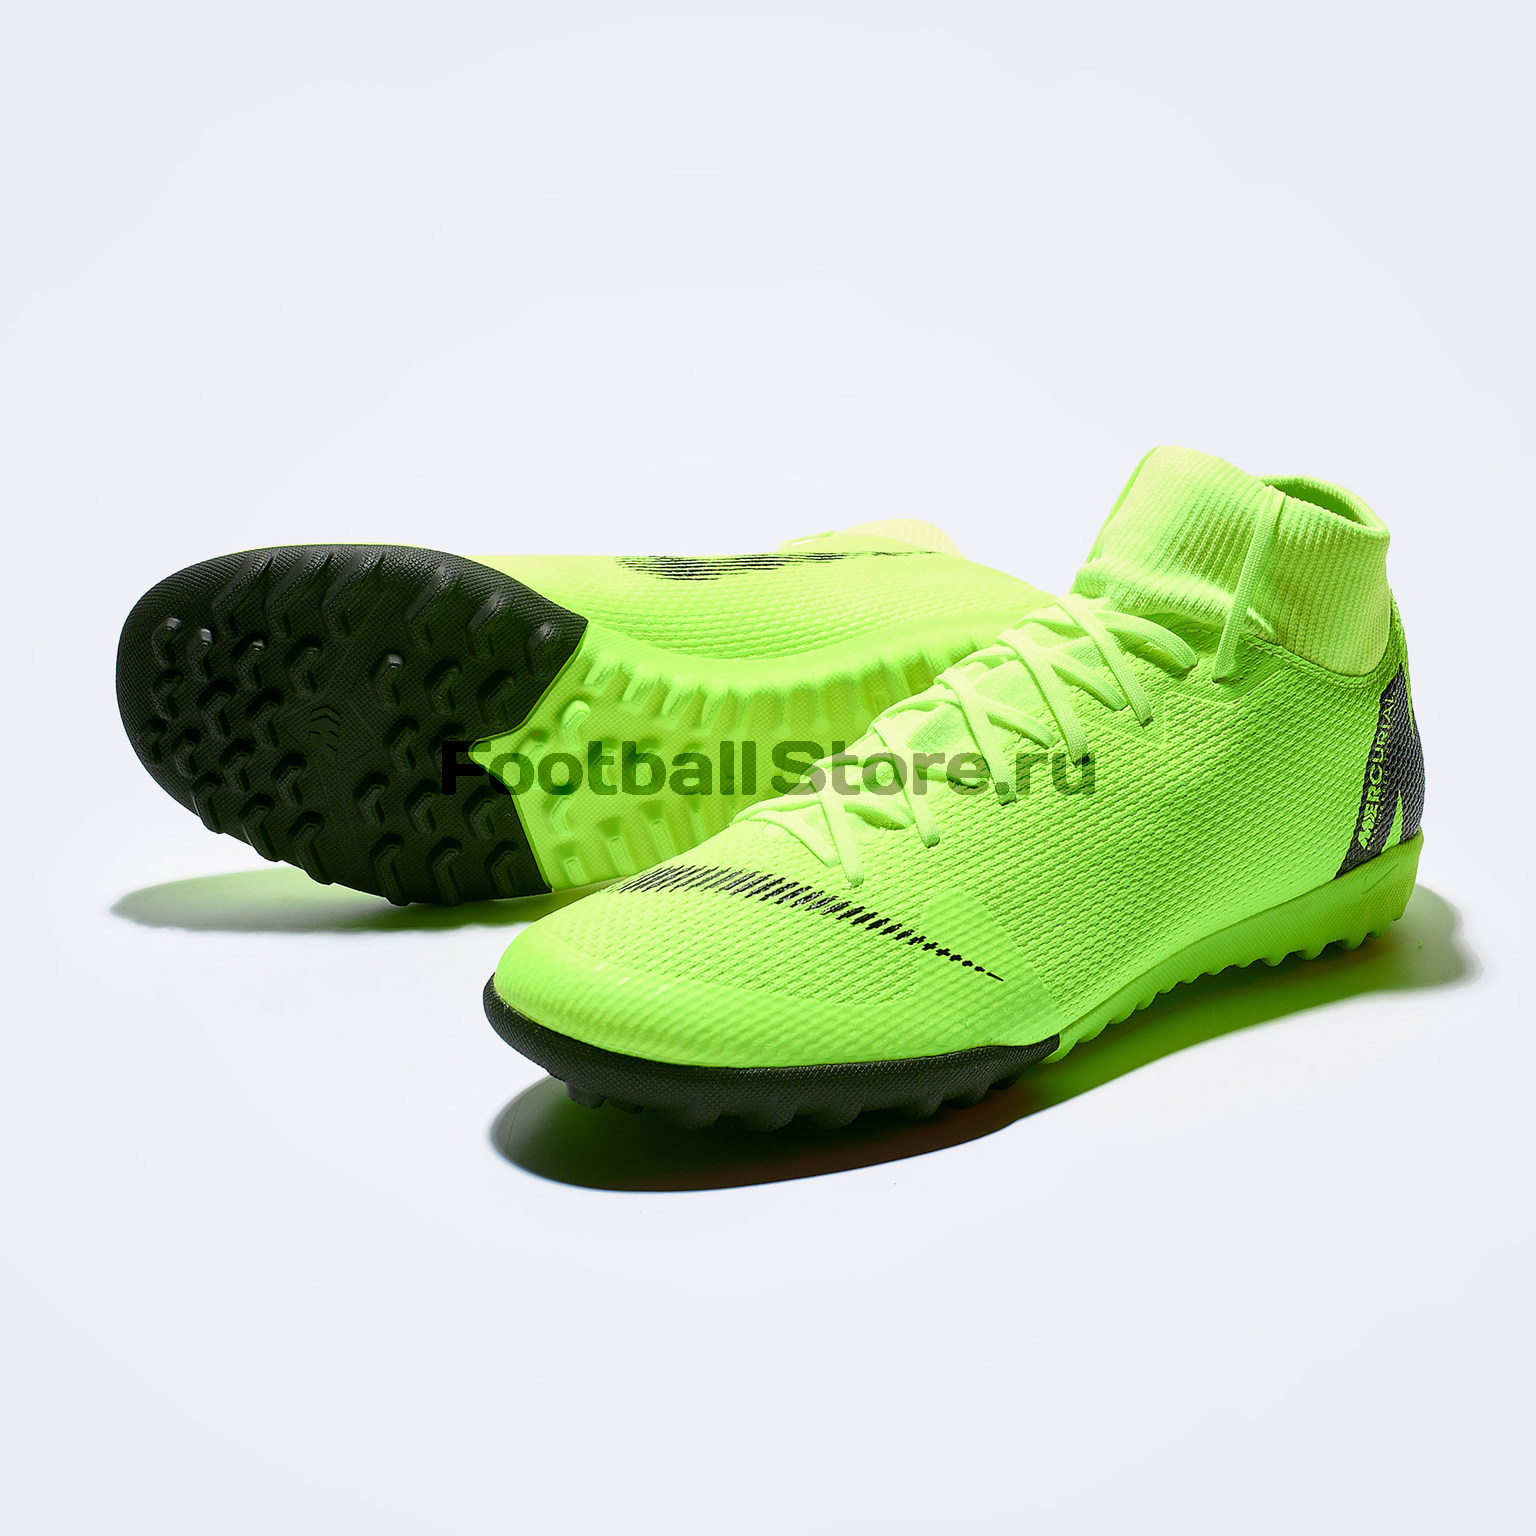 Шиповки Nike SuperFly X 6 Academy TF AH7370-701 бутсы nike шиповки nike jr tiempox legend vi tf 819191 018